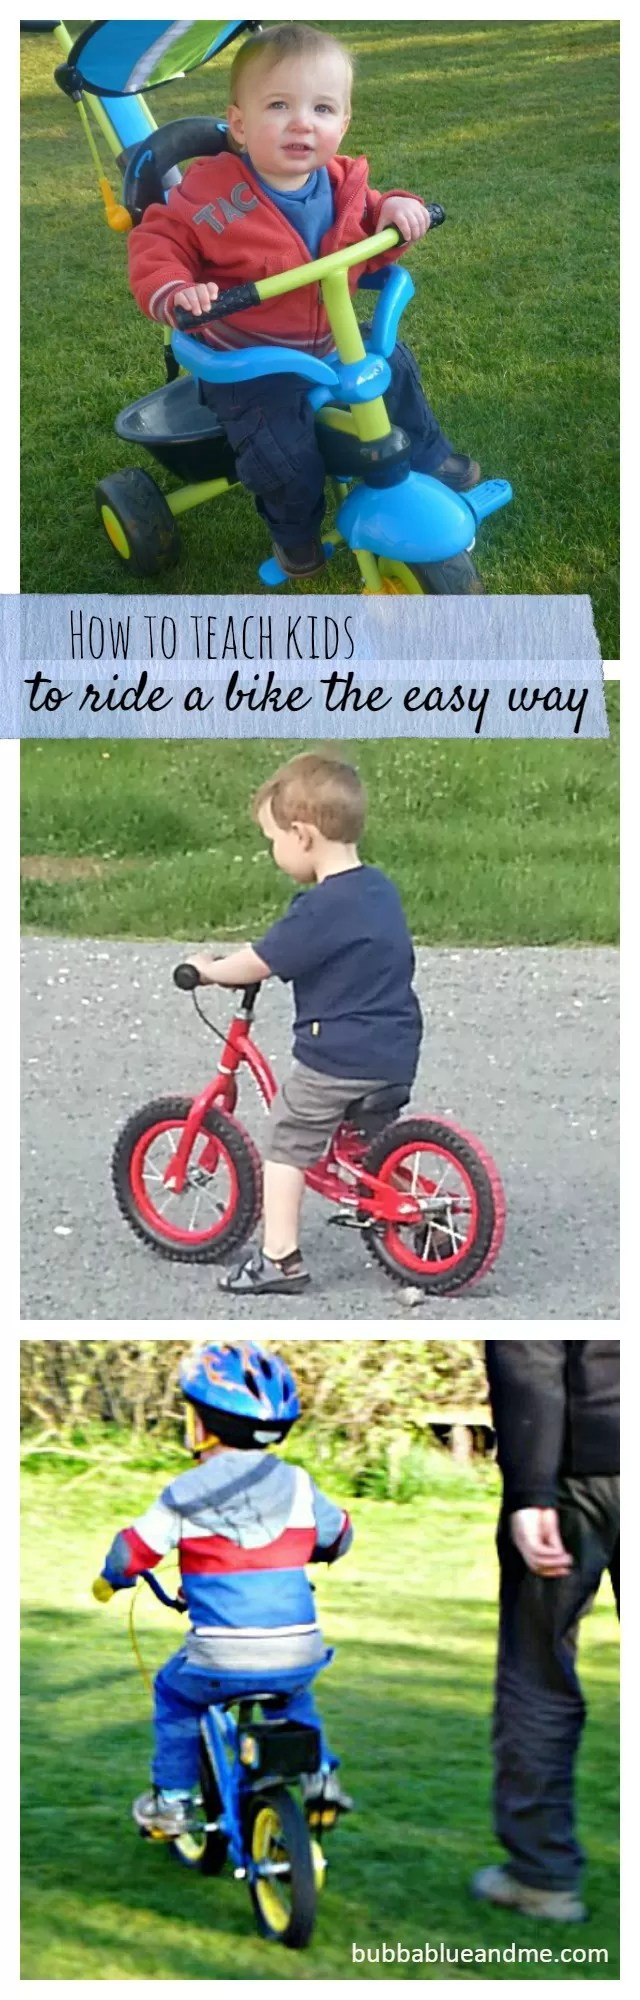 how to teach children to ride a bike the easy and tumble free way - Bubbablueandme